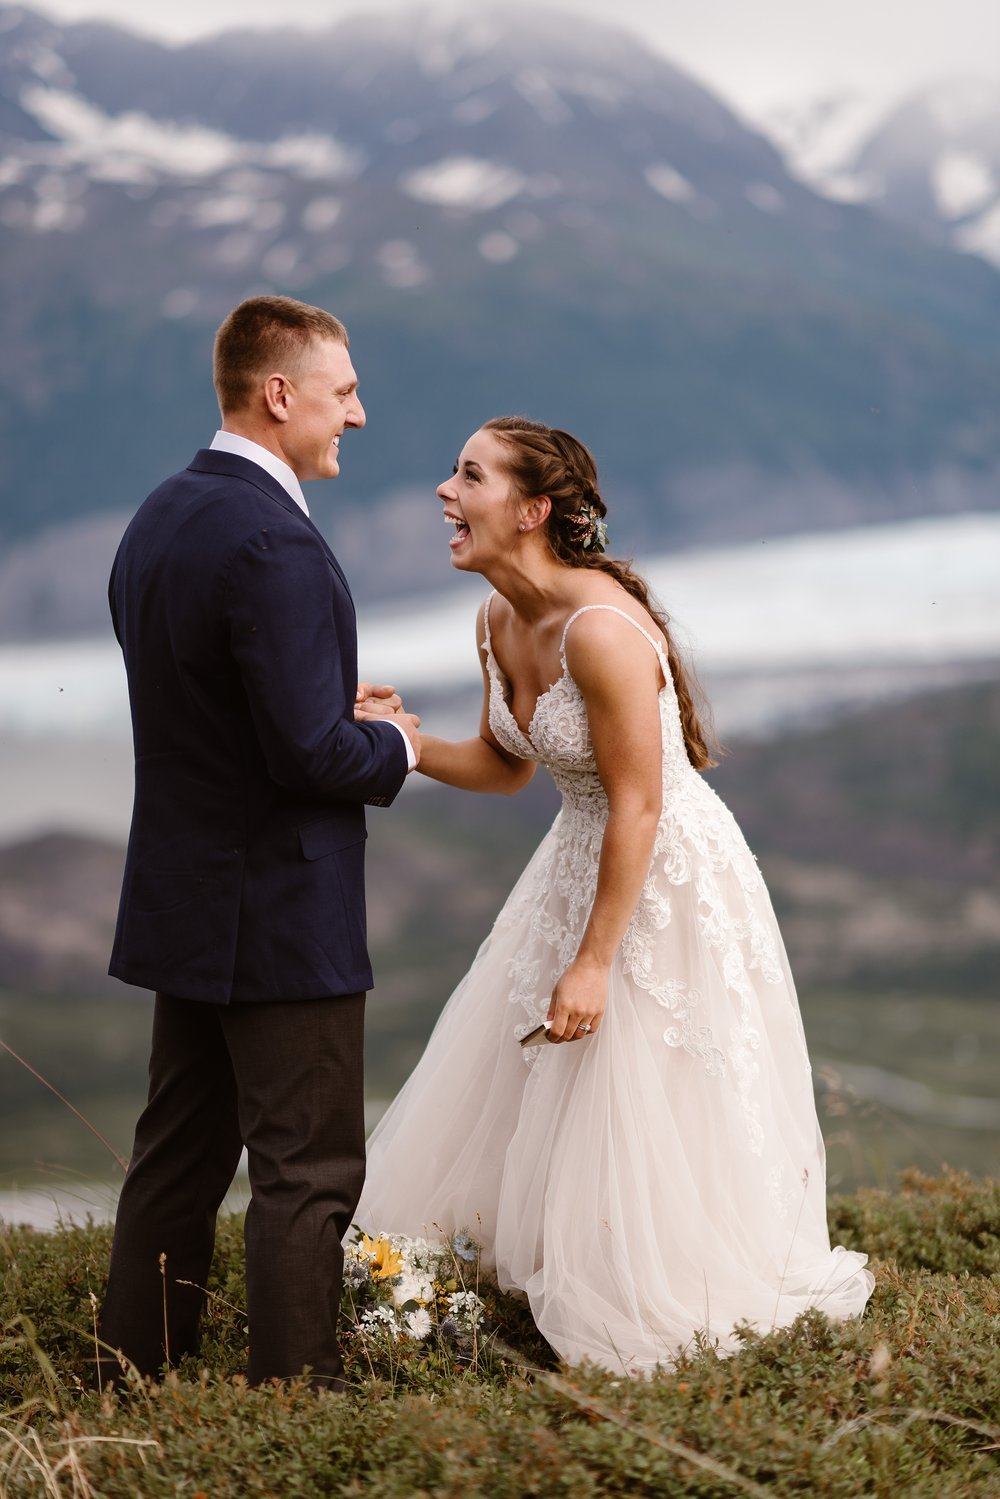 Jordyn and Connor, the bride and groom, hold hands during their elopement ceremony at the top of a green, lush hill with mountains in the background. Jordyn leans in, laughing at her groom, and Connor smiles at Jordyn in this elopement photo captured by Adventure Instead, an elopement wedding photographer.